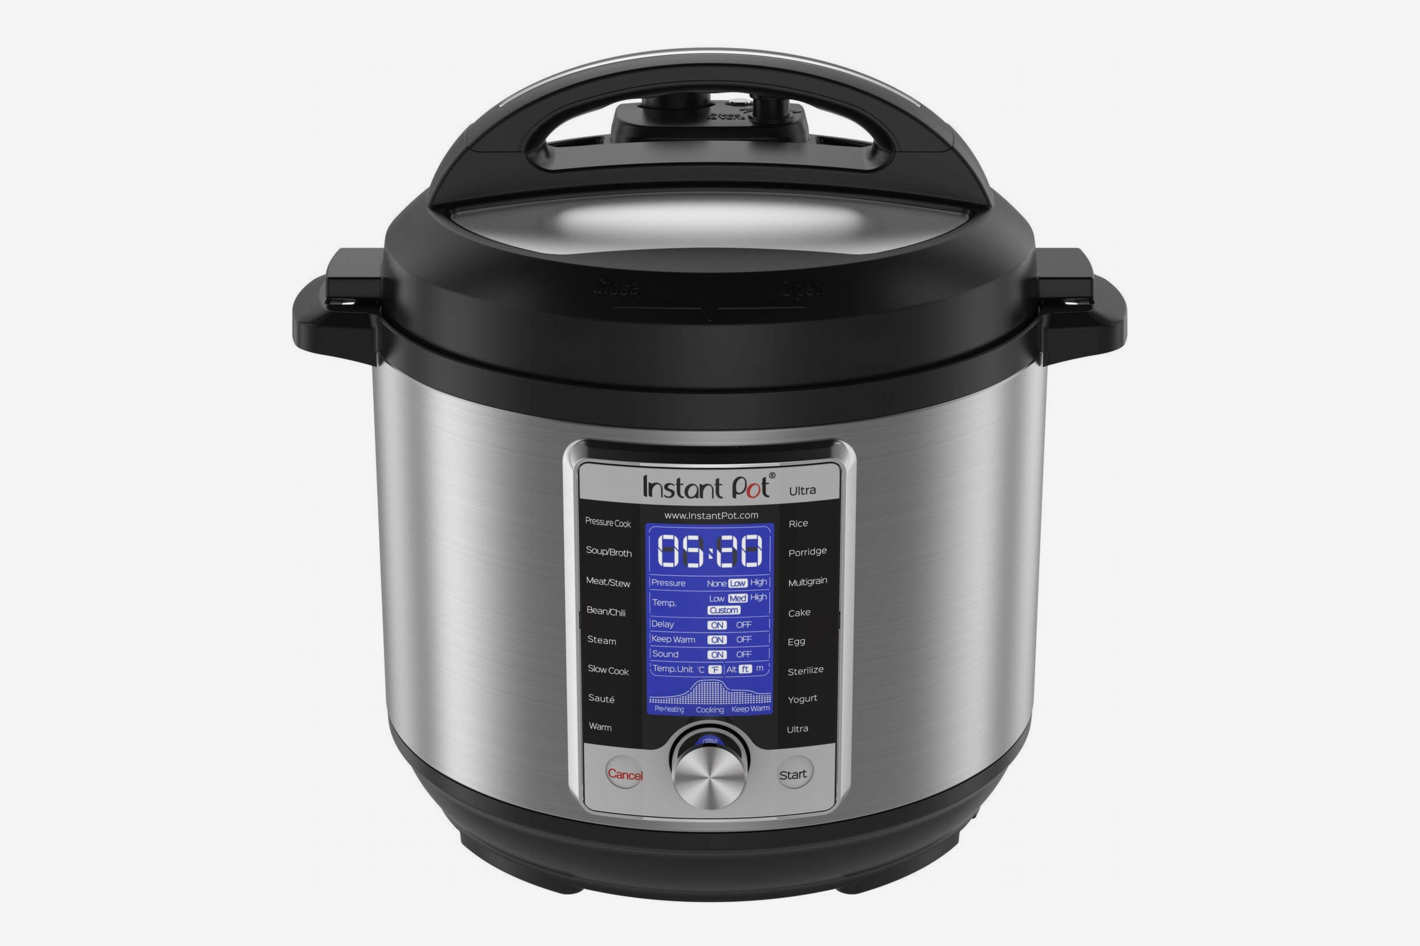 Instant Pot Ultra 6 Qt 10-in-1 Multi- Use Programmable Pressure Cooker